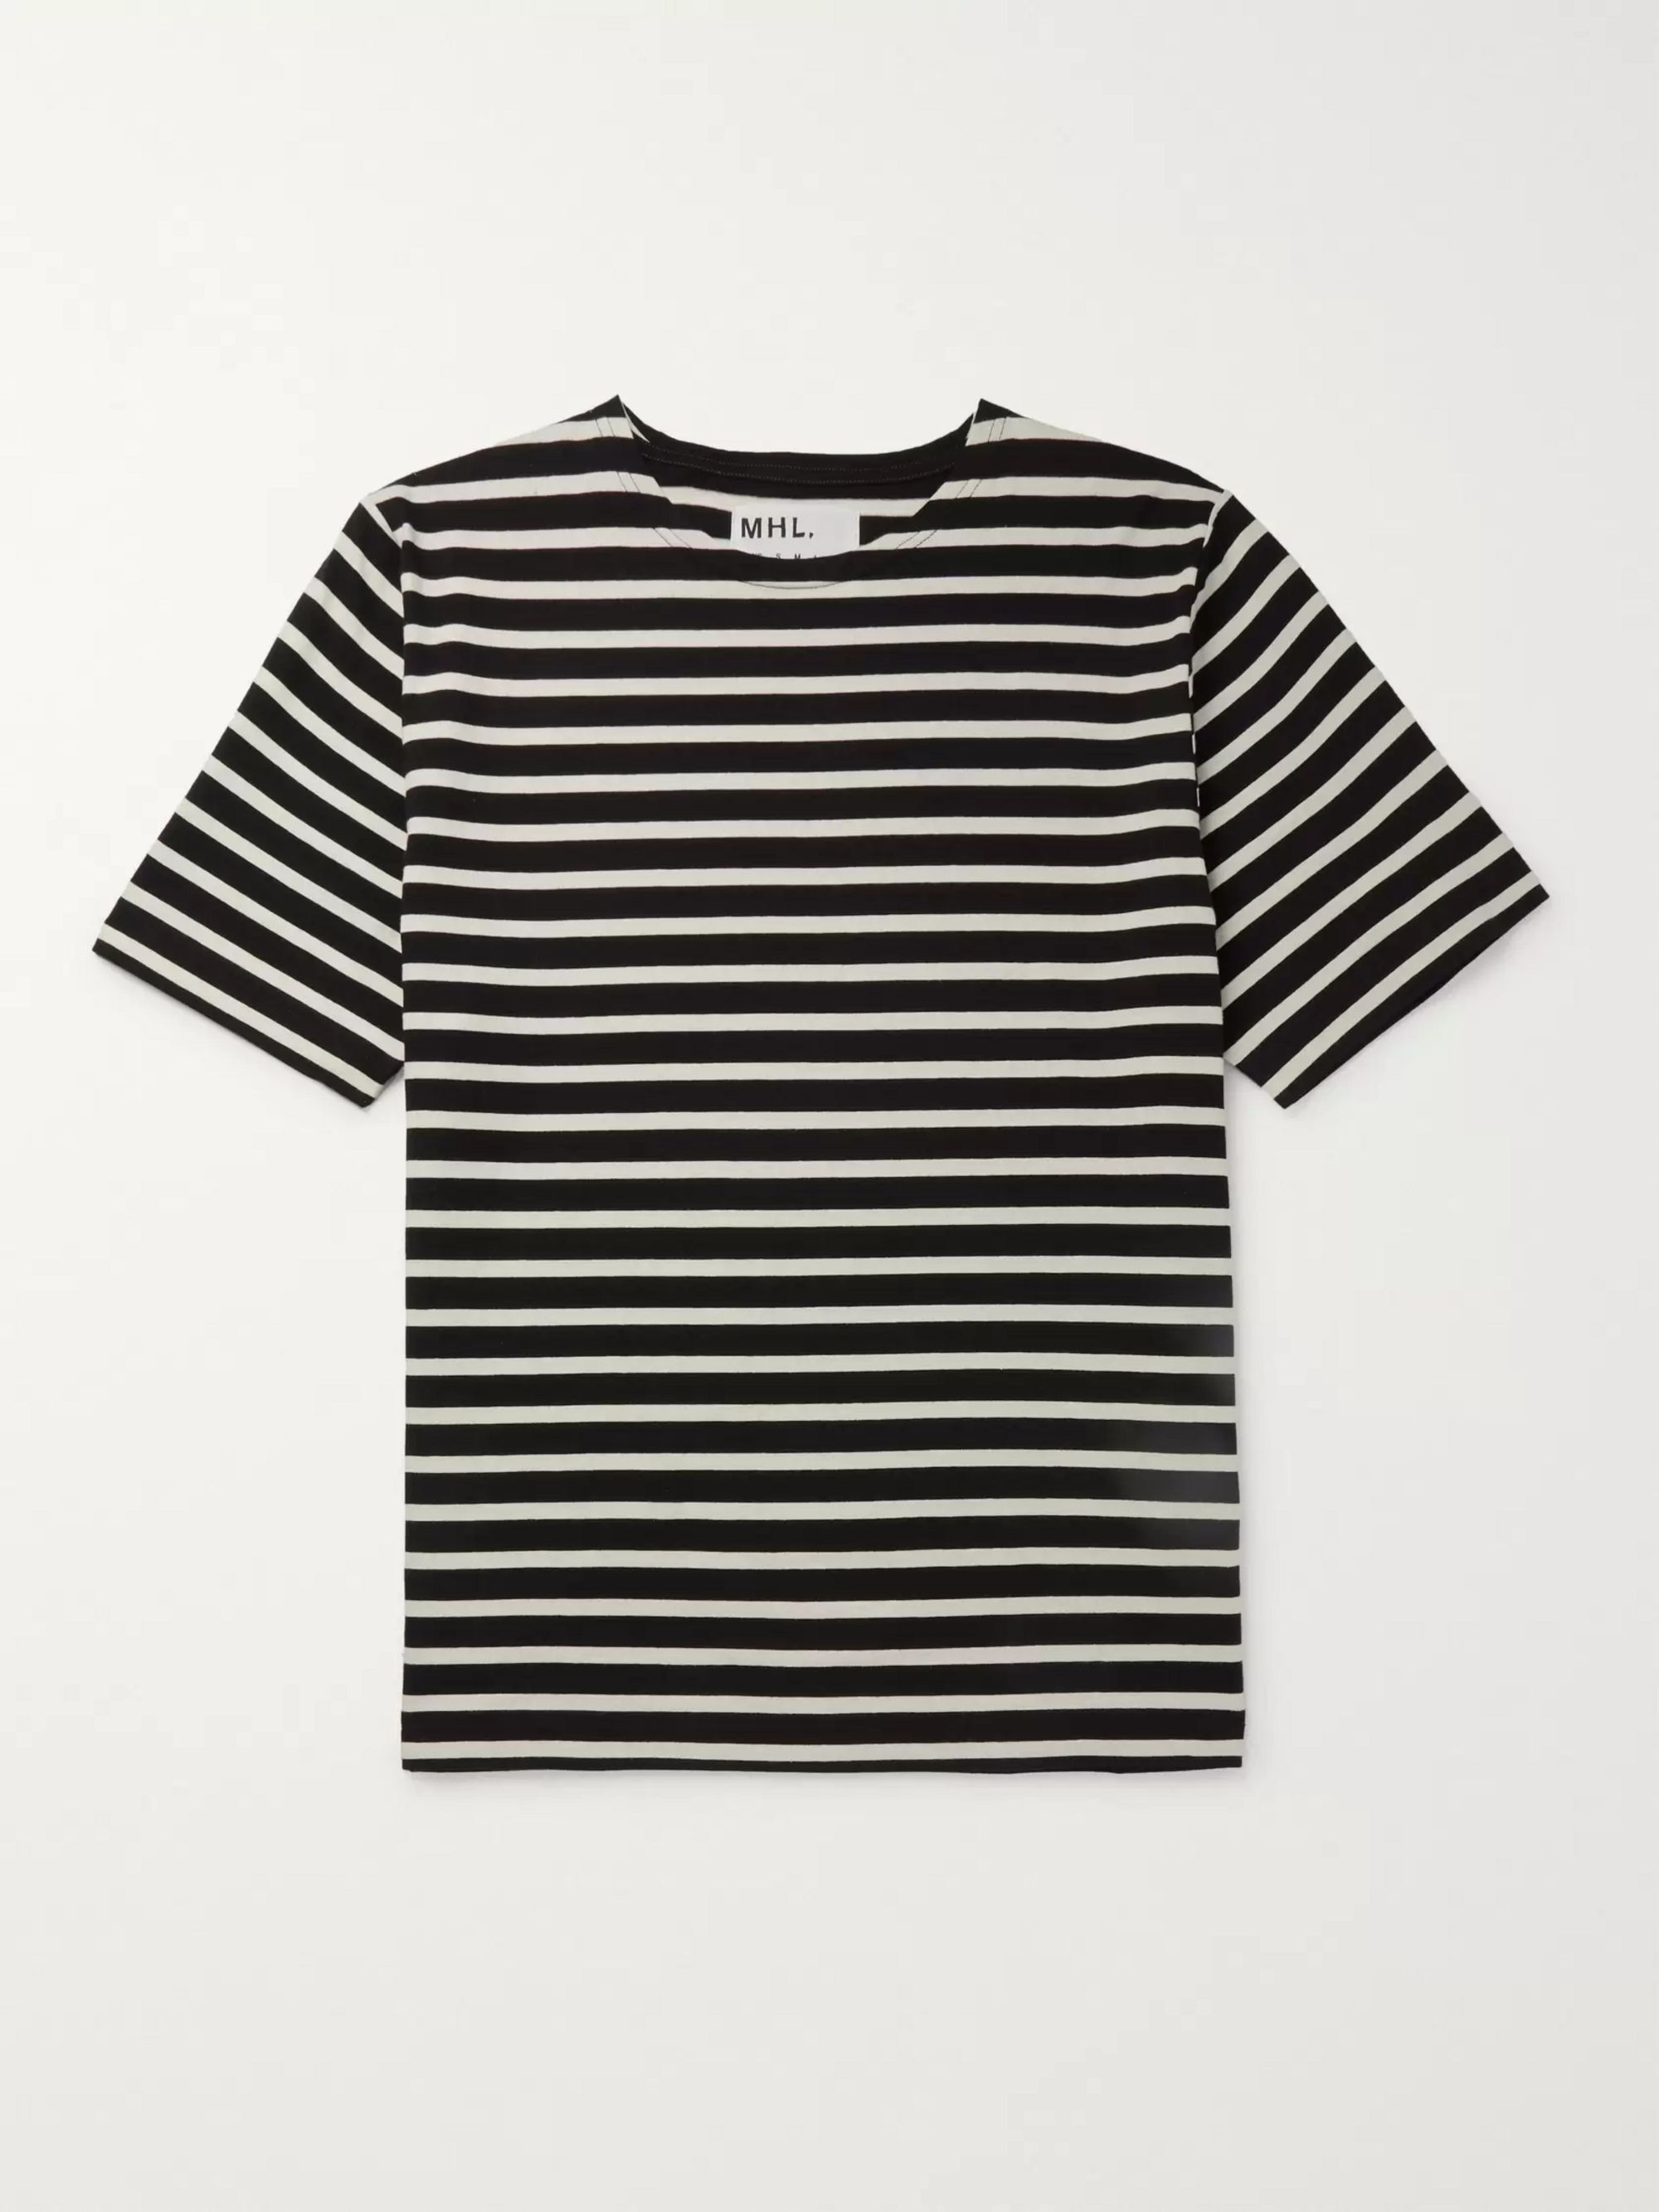 Margaret Howell MHL Striped Cotton-Jersey T-Shirt